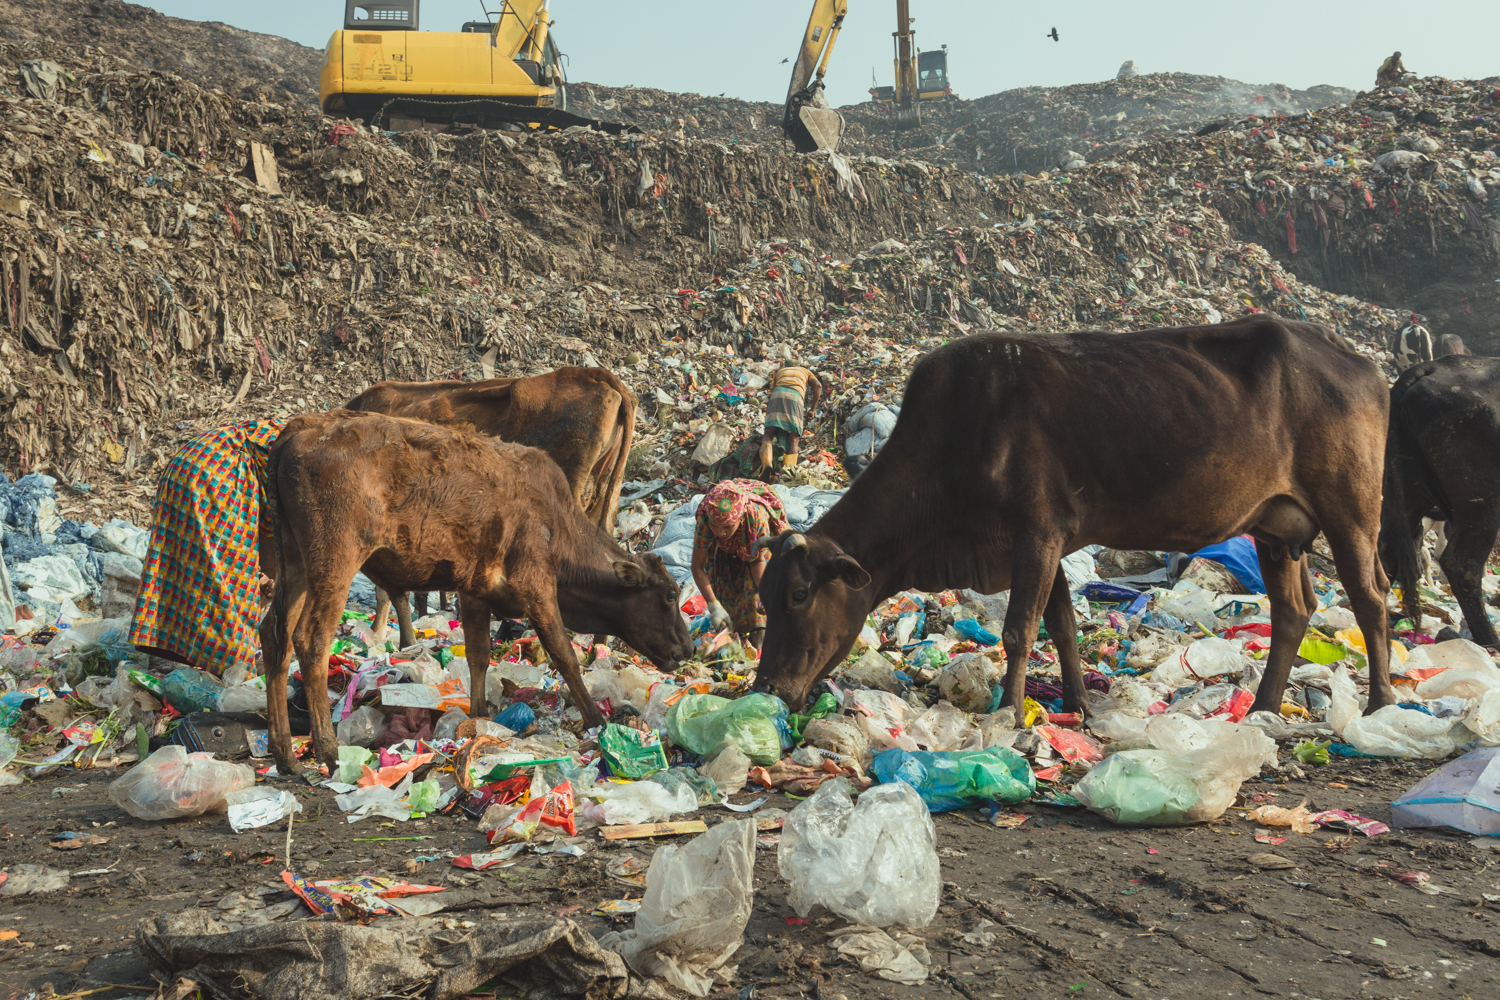 Alongside starving animals, the waste pickers of Chittagong, Bangladesh scour through waste to earn their income.